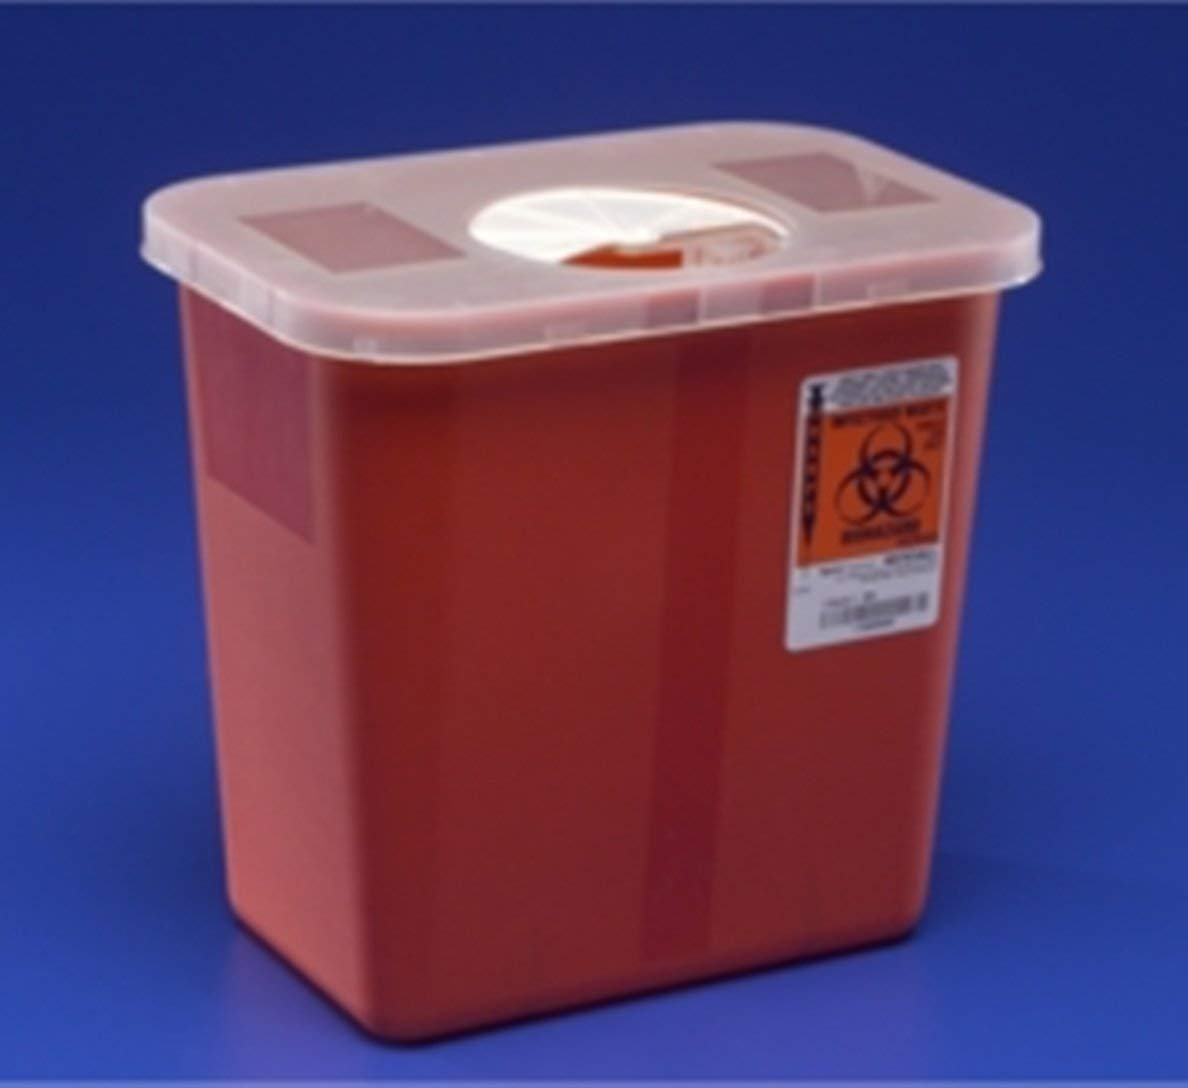 Image of Kendall 8970 Sharps Disposal Biohazard Waste Container with Rotor Lid, 2 Gallon Capacity, 10.5' Width x 10' Height x 7.25' Depth, Red Base (Case of 20) Biohazard Waste Disposal Bags